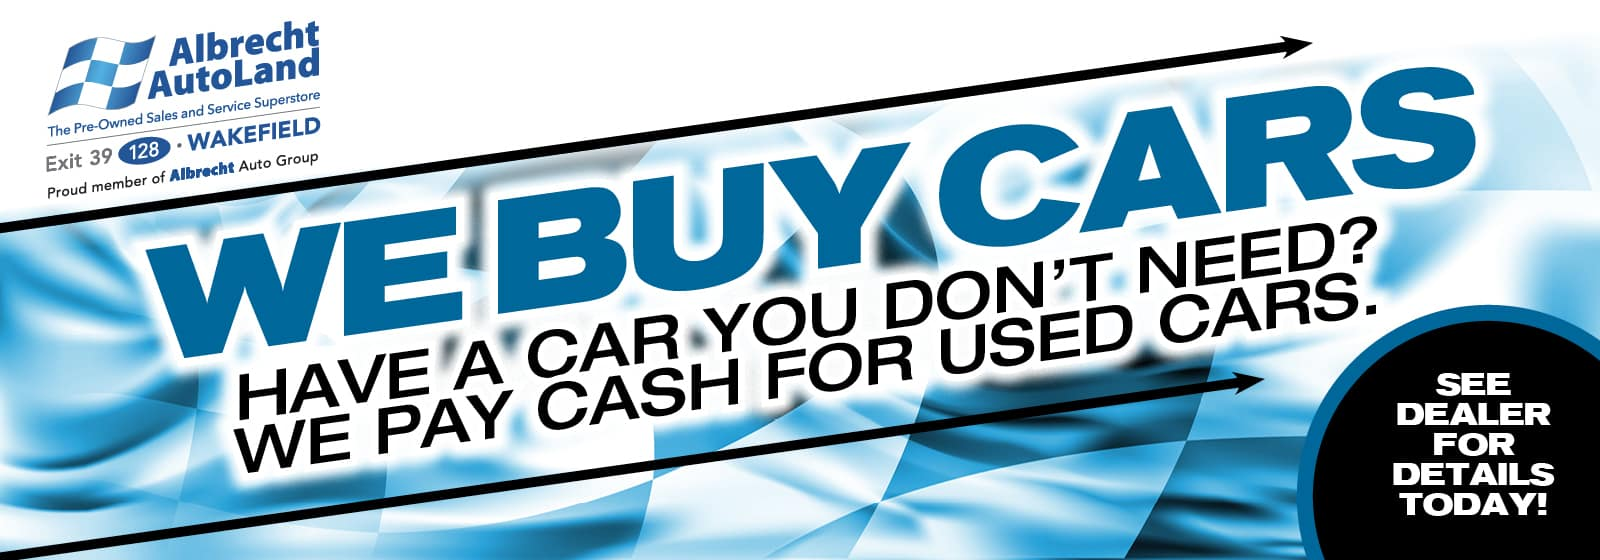 We Buy Cars. We Pay Cash For Used Cars